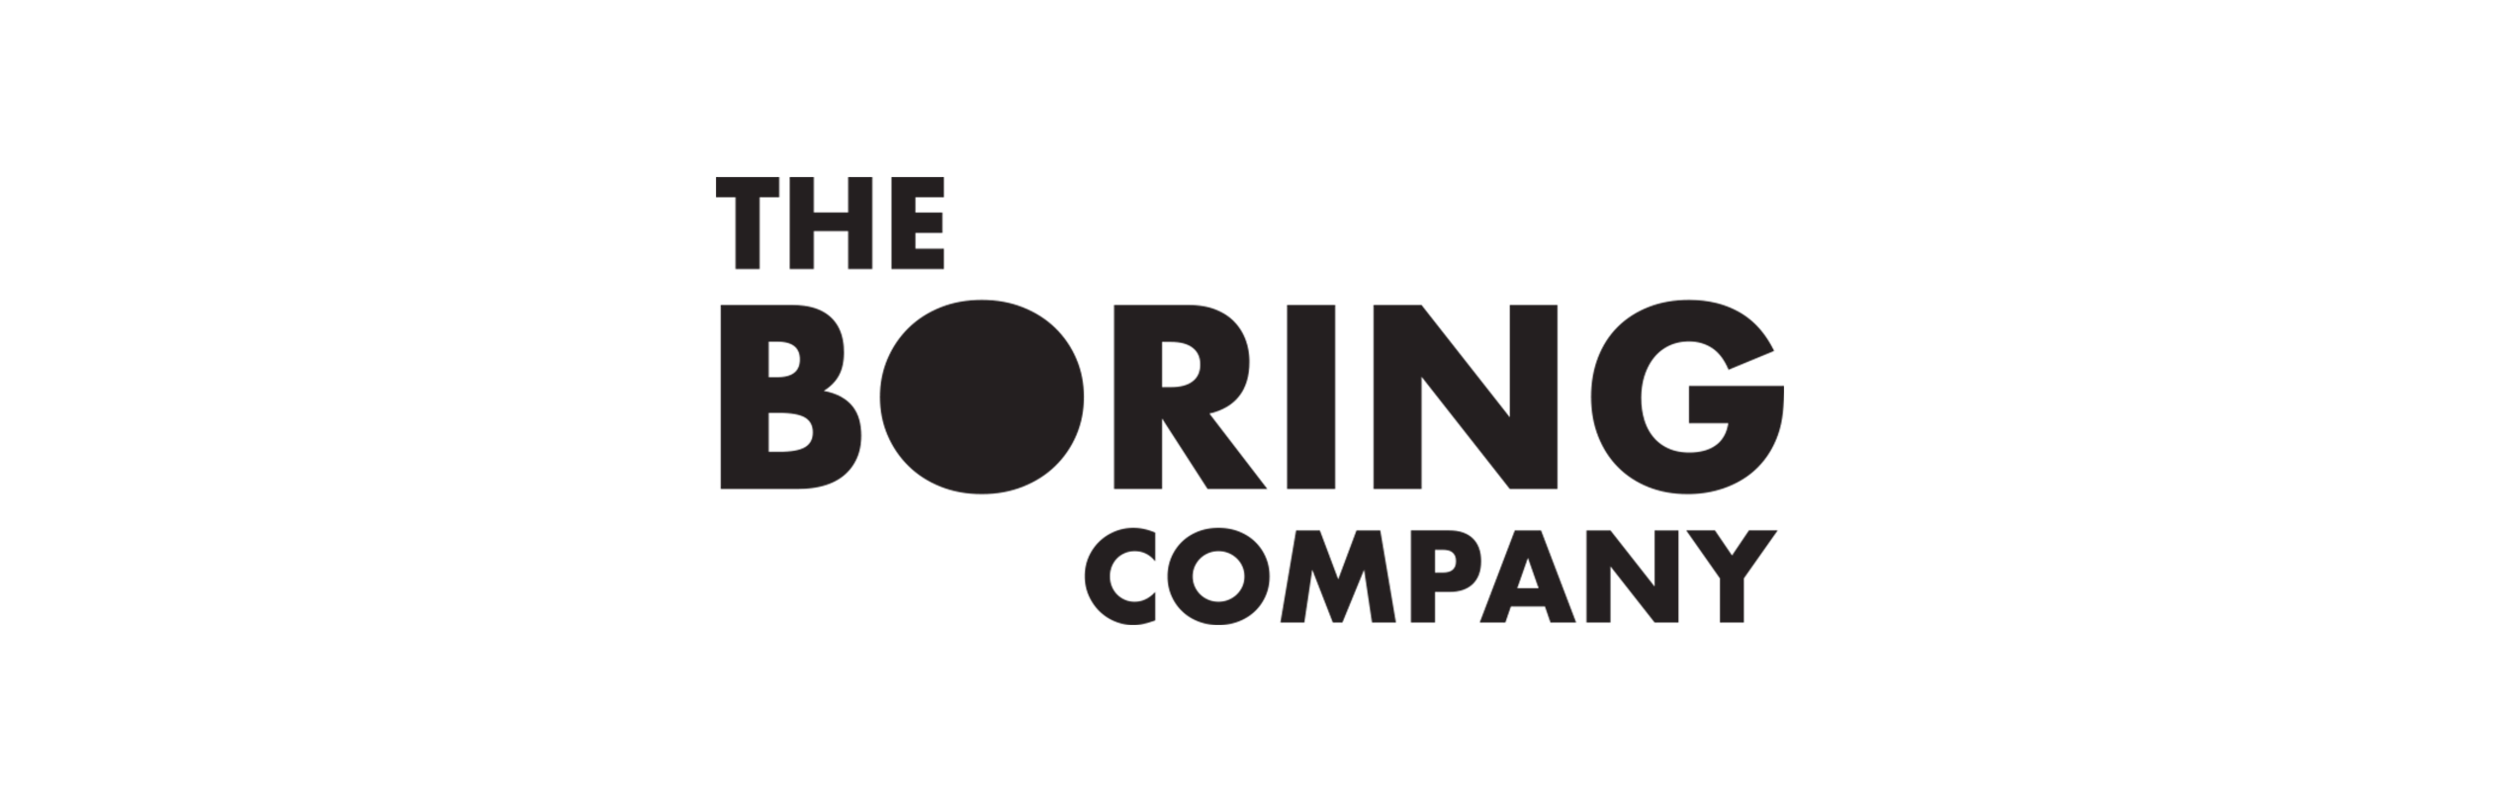 The boring Company.png